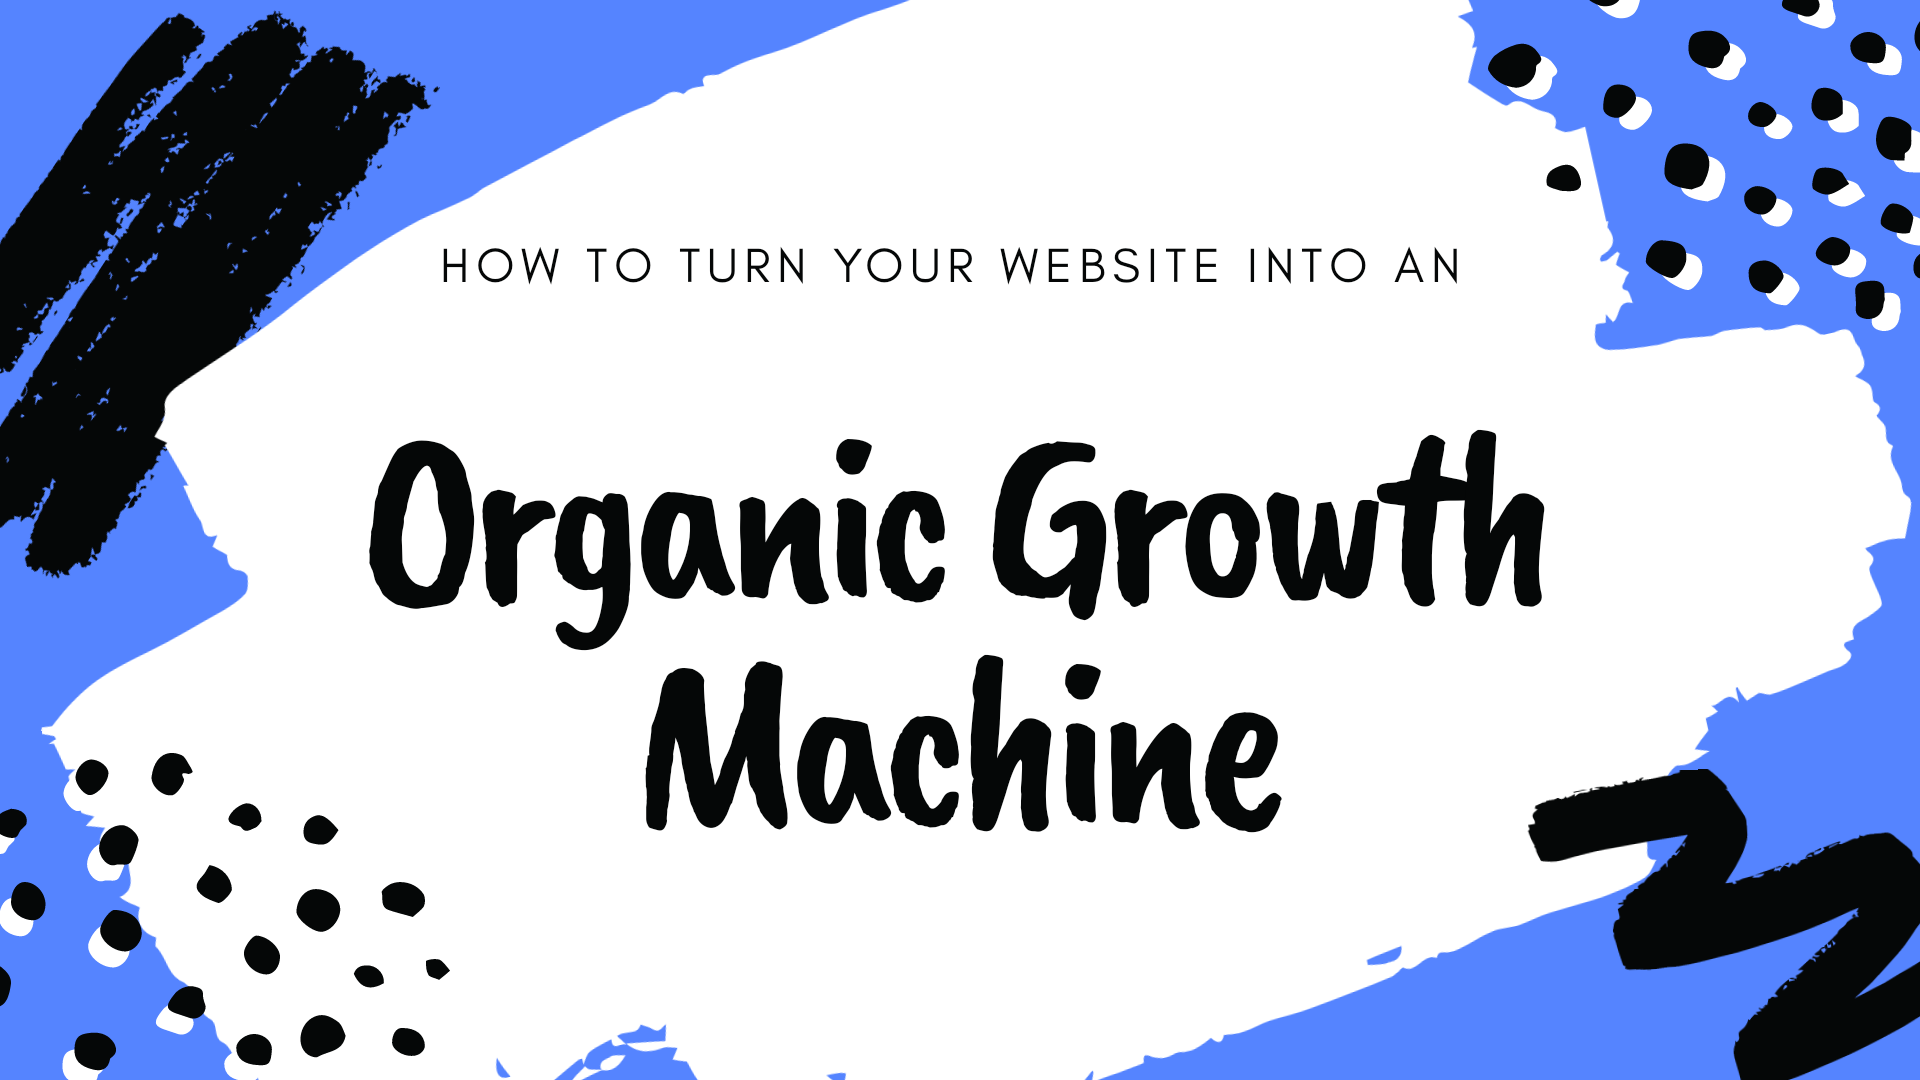 How to Turn Your Website into an Organic Growth Machine?